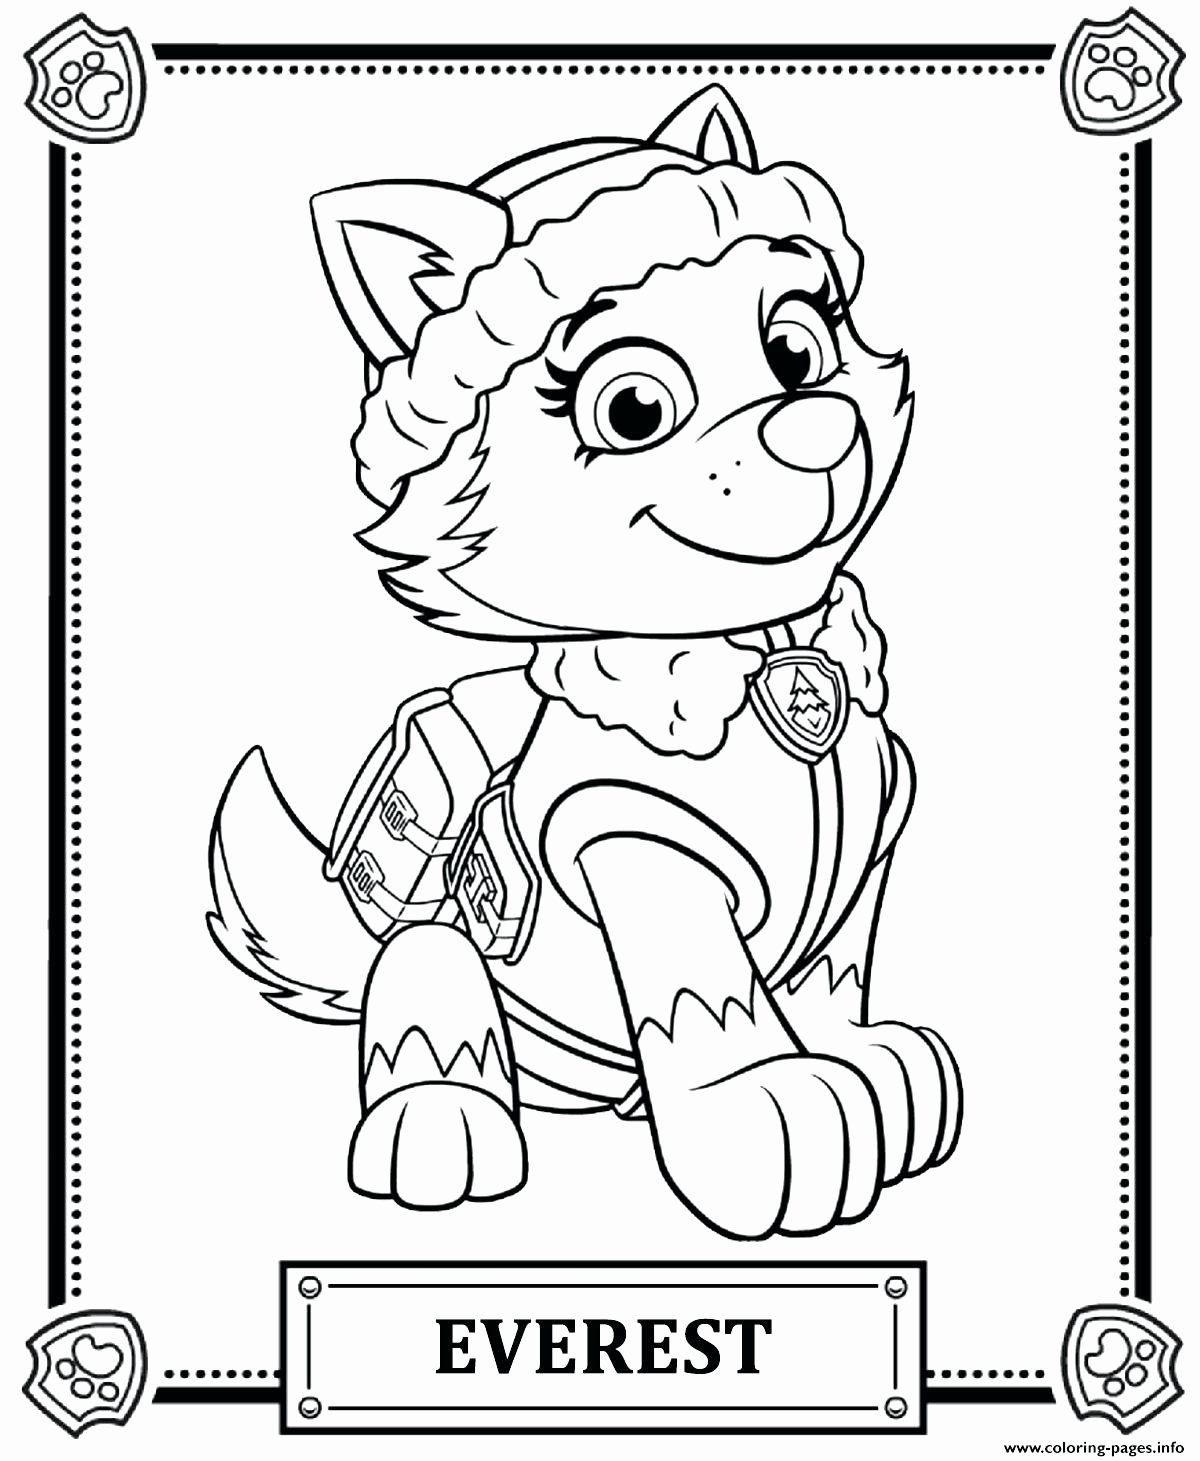 Cartoon Coloring Book Pdf Download Lovely Paw Patrol Drawing Games At Paintingvalley Paw Patrol Coloring Paw Patrol Coloring Pages Sky Paw Patrol